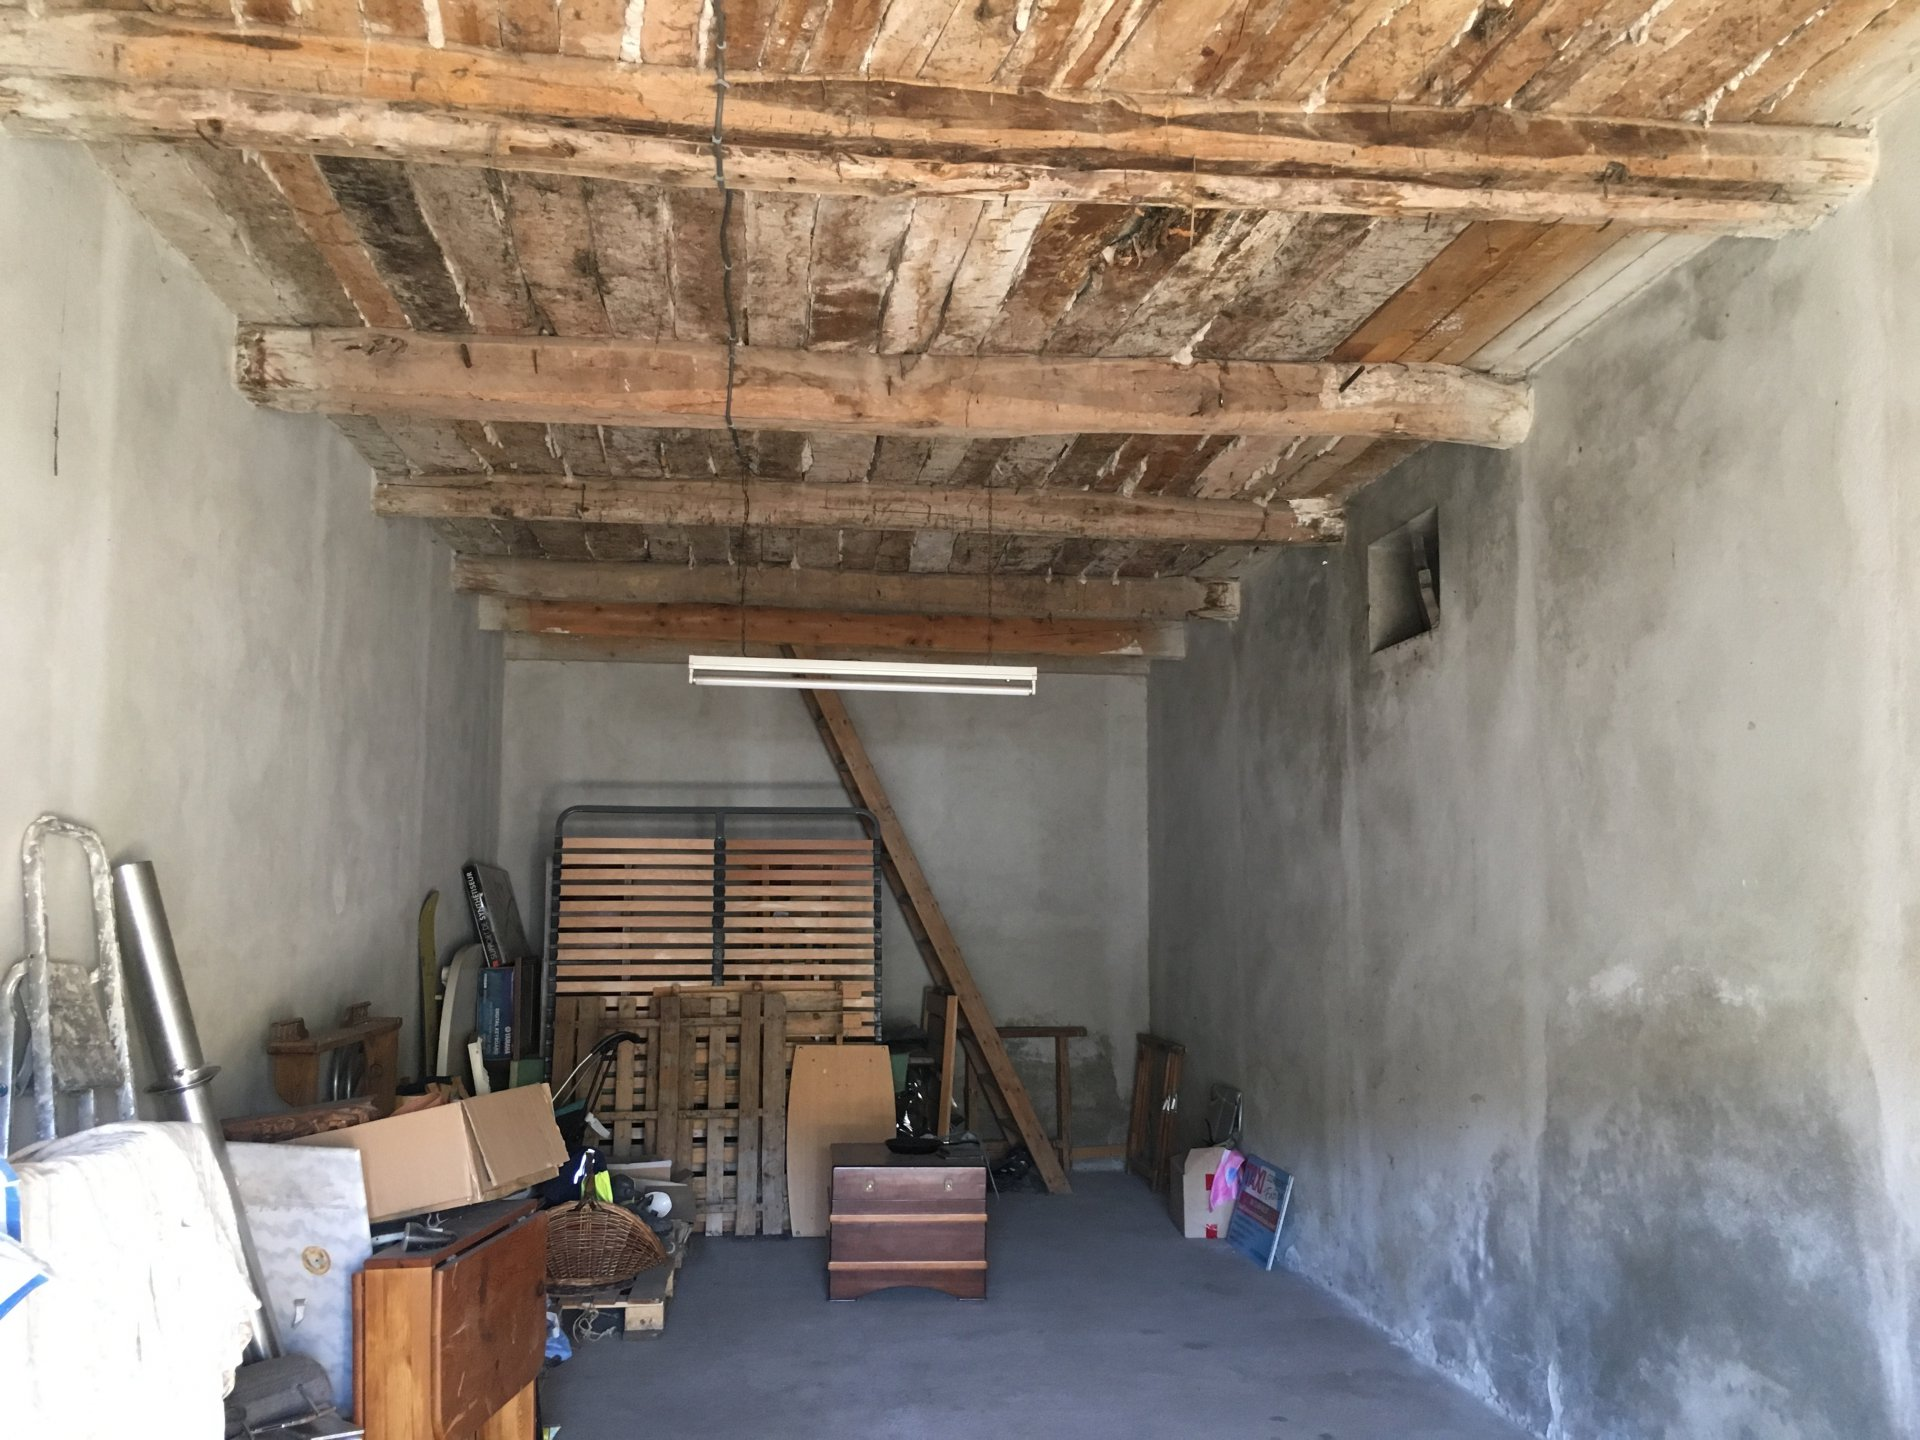 Garage / To renovate